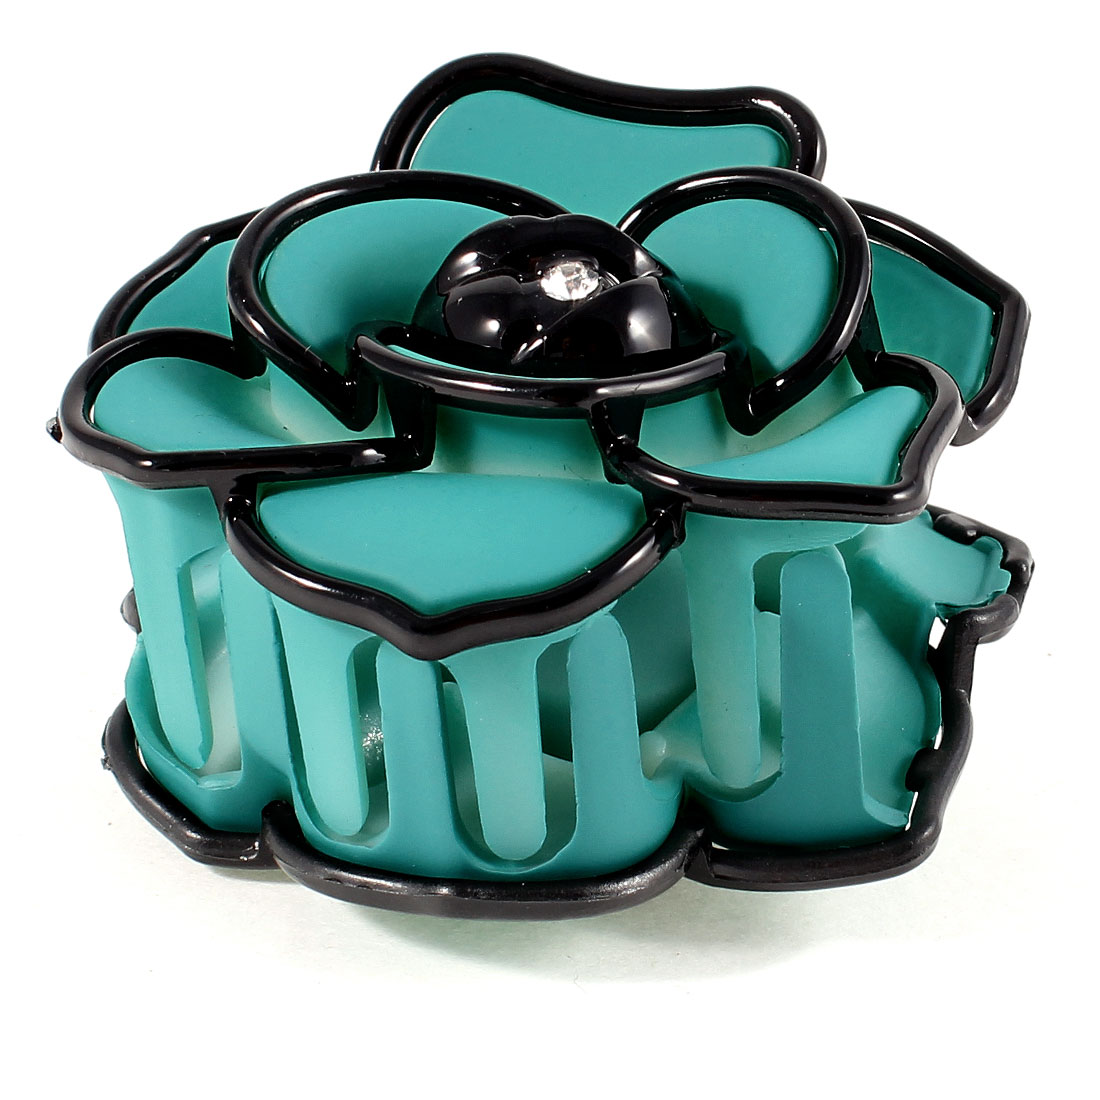 Rhinestone Detail Rose Flower Plastic Barrette Hair Clip Clamp Teal Green